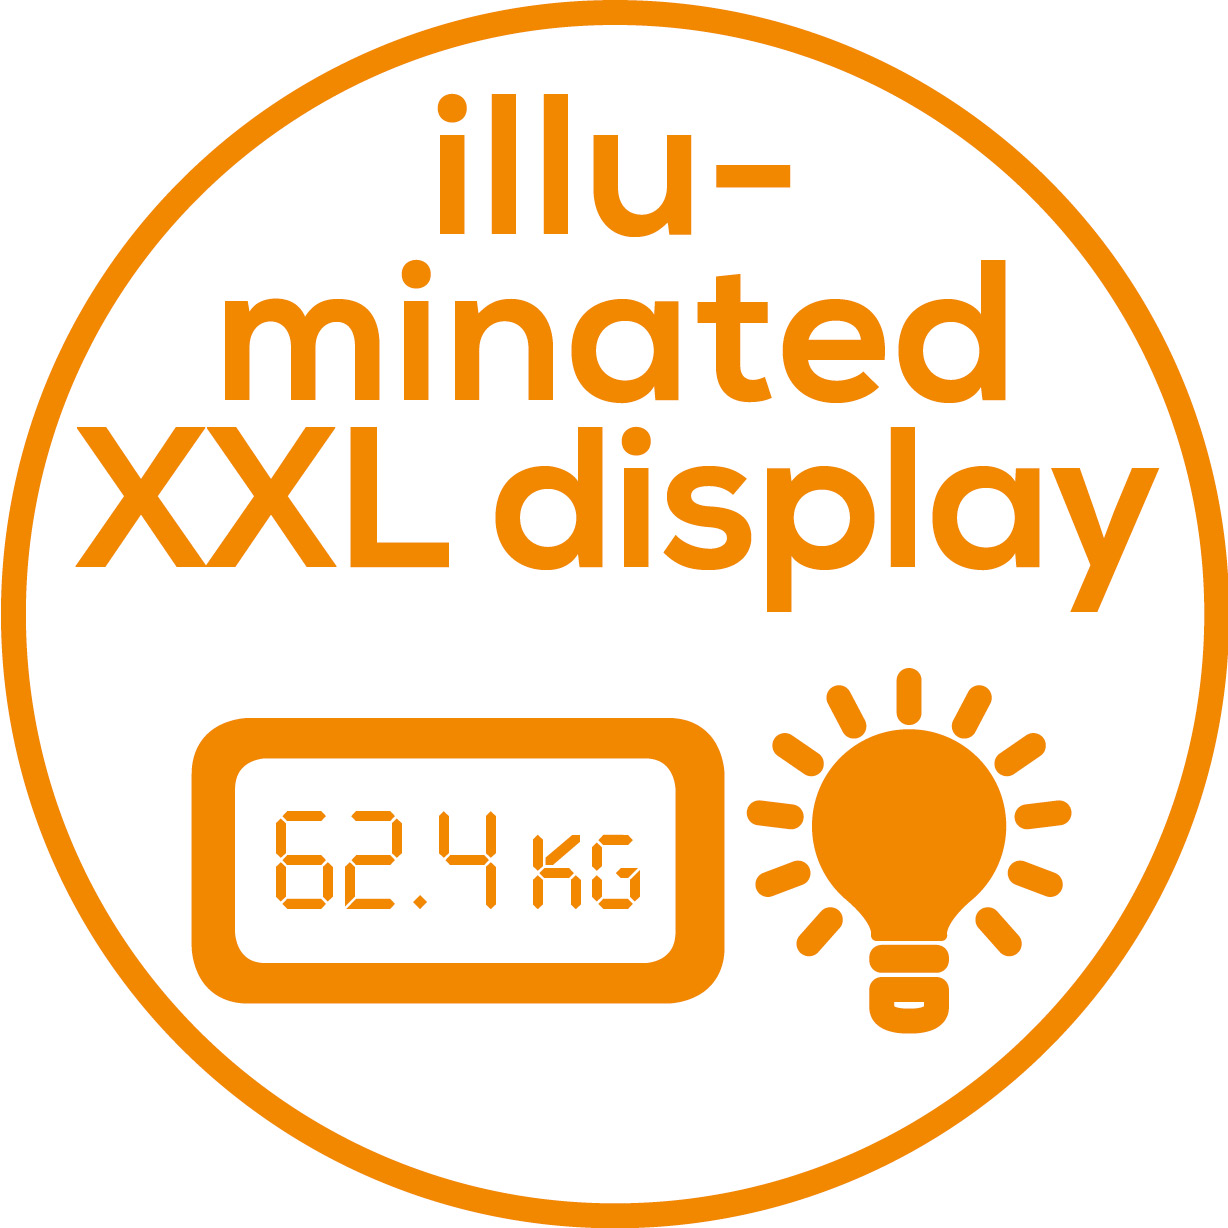 XXL display Illuminated, XXL display for optimum readability